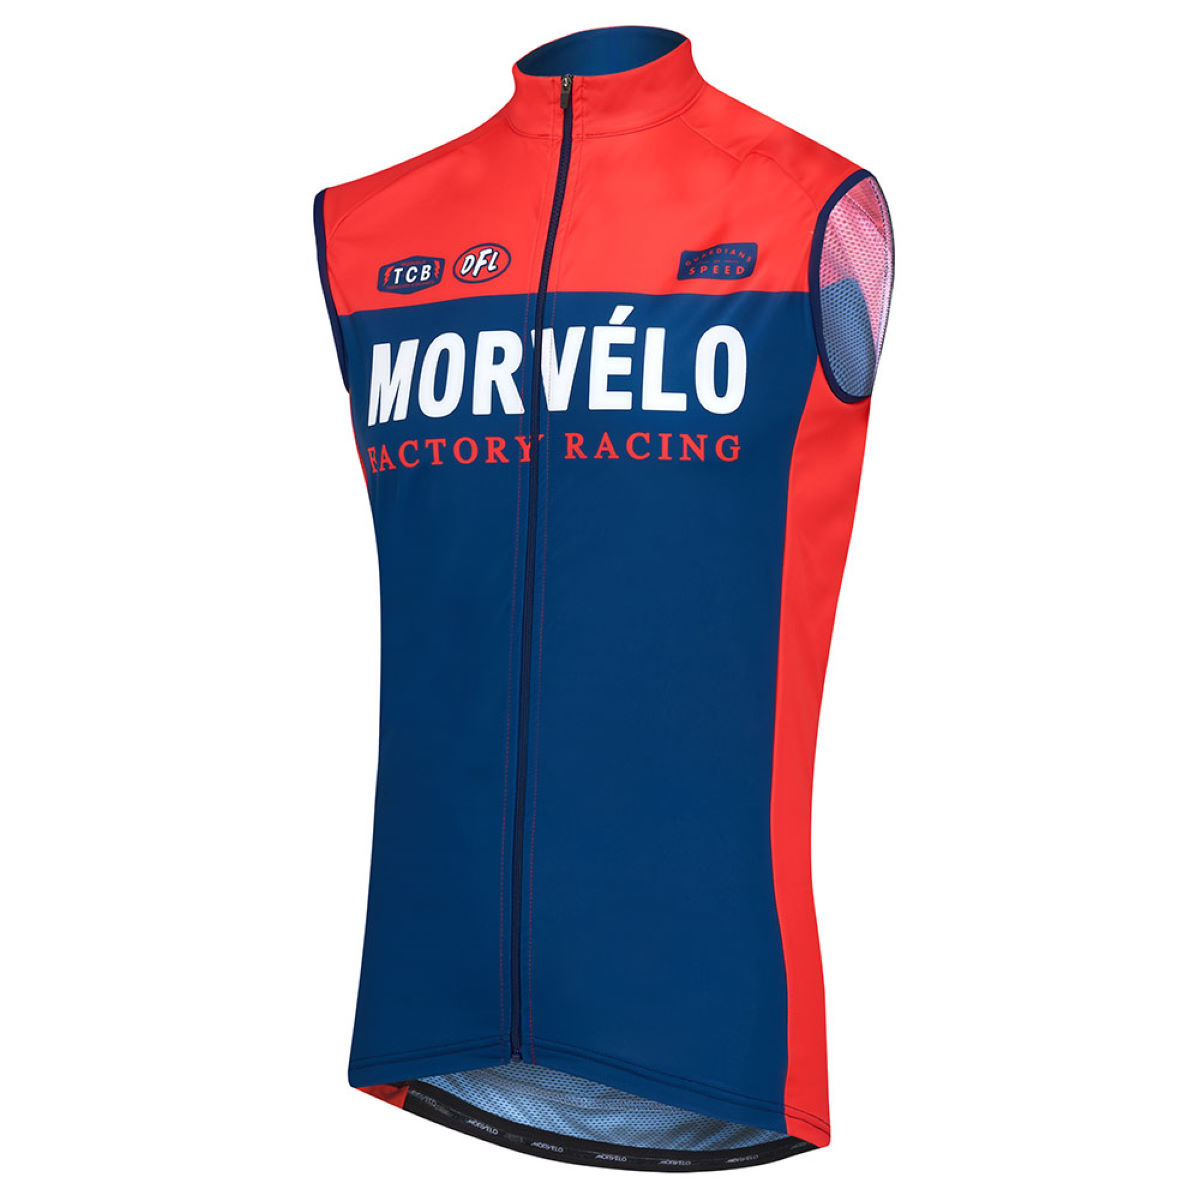 Gilet sans manches VTT Morvelo Factory Racing Covert - XXL Factory Racing Gilets vélo